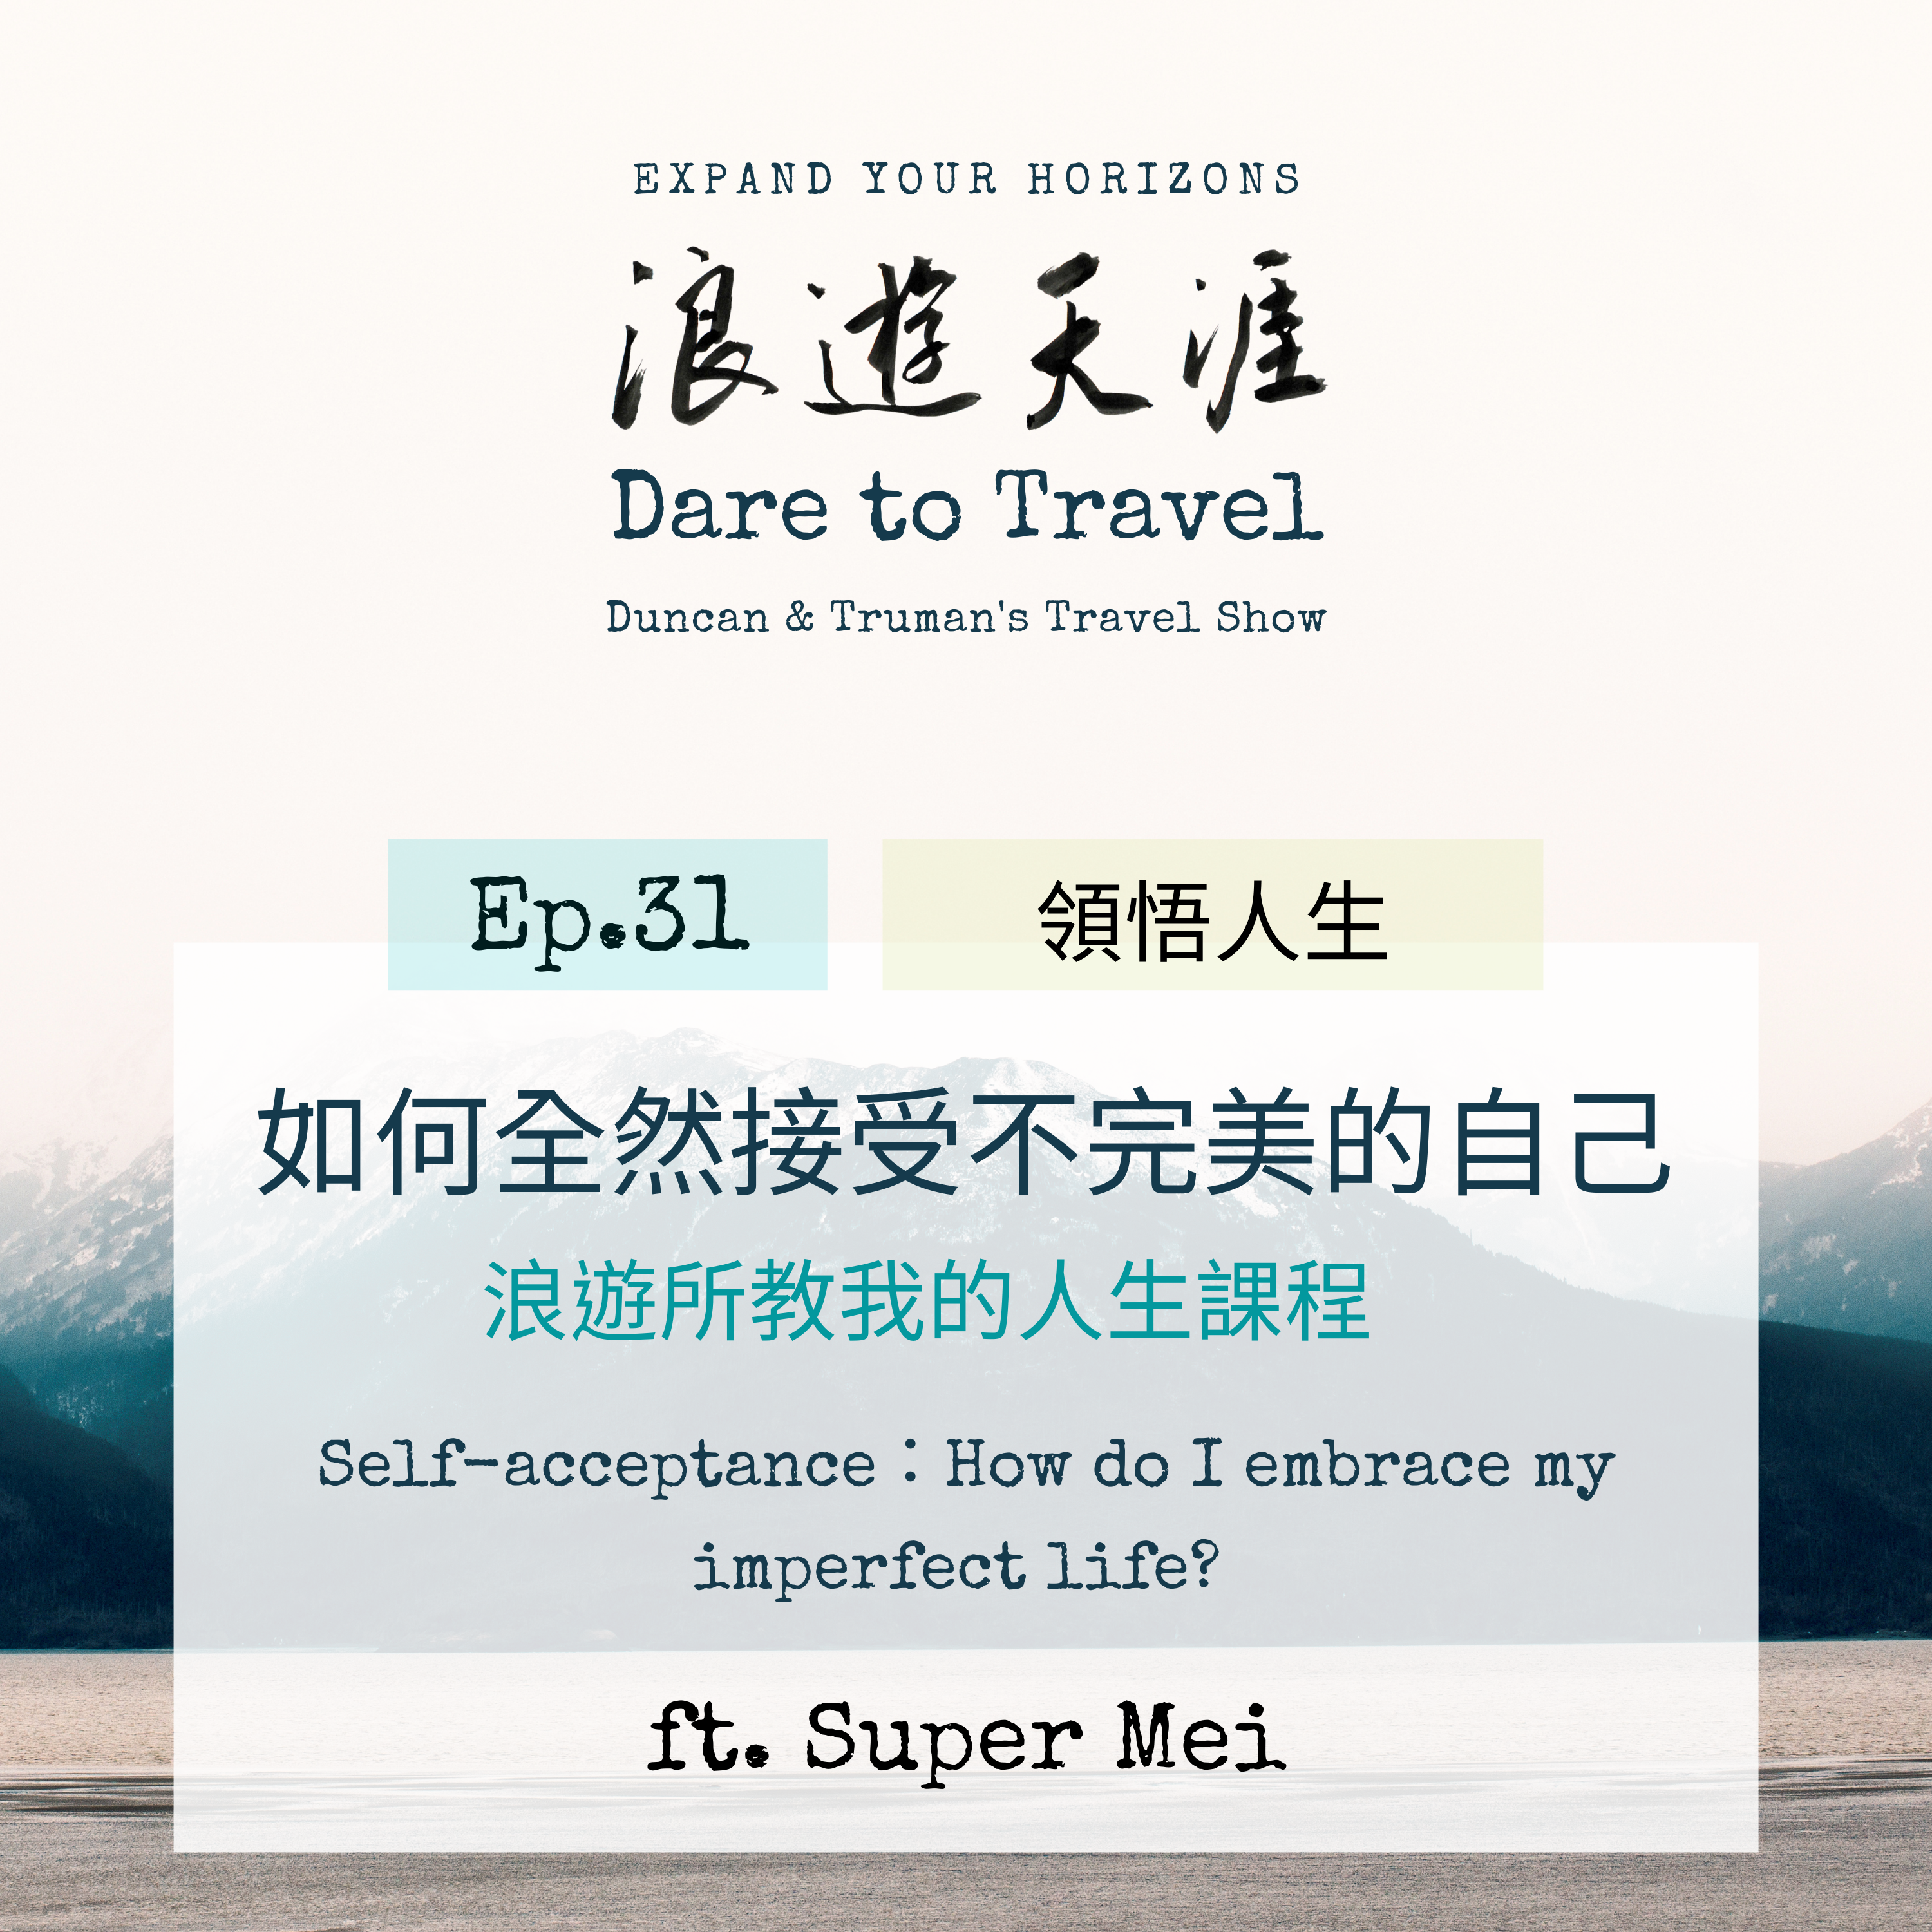 Ep. 31 領悟人生-浪遊所教我的人生課程: 如何全然接受不完美的自己 / Self-acceptance:How do I embrace my imperfect life? ft. Super Mei